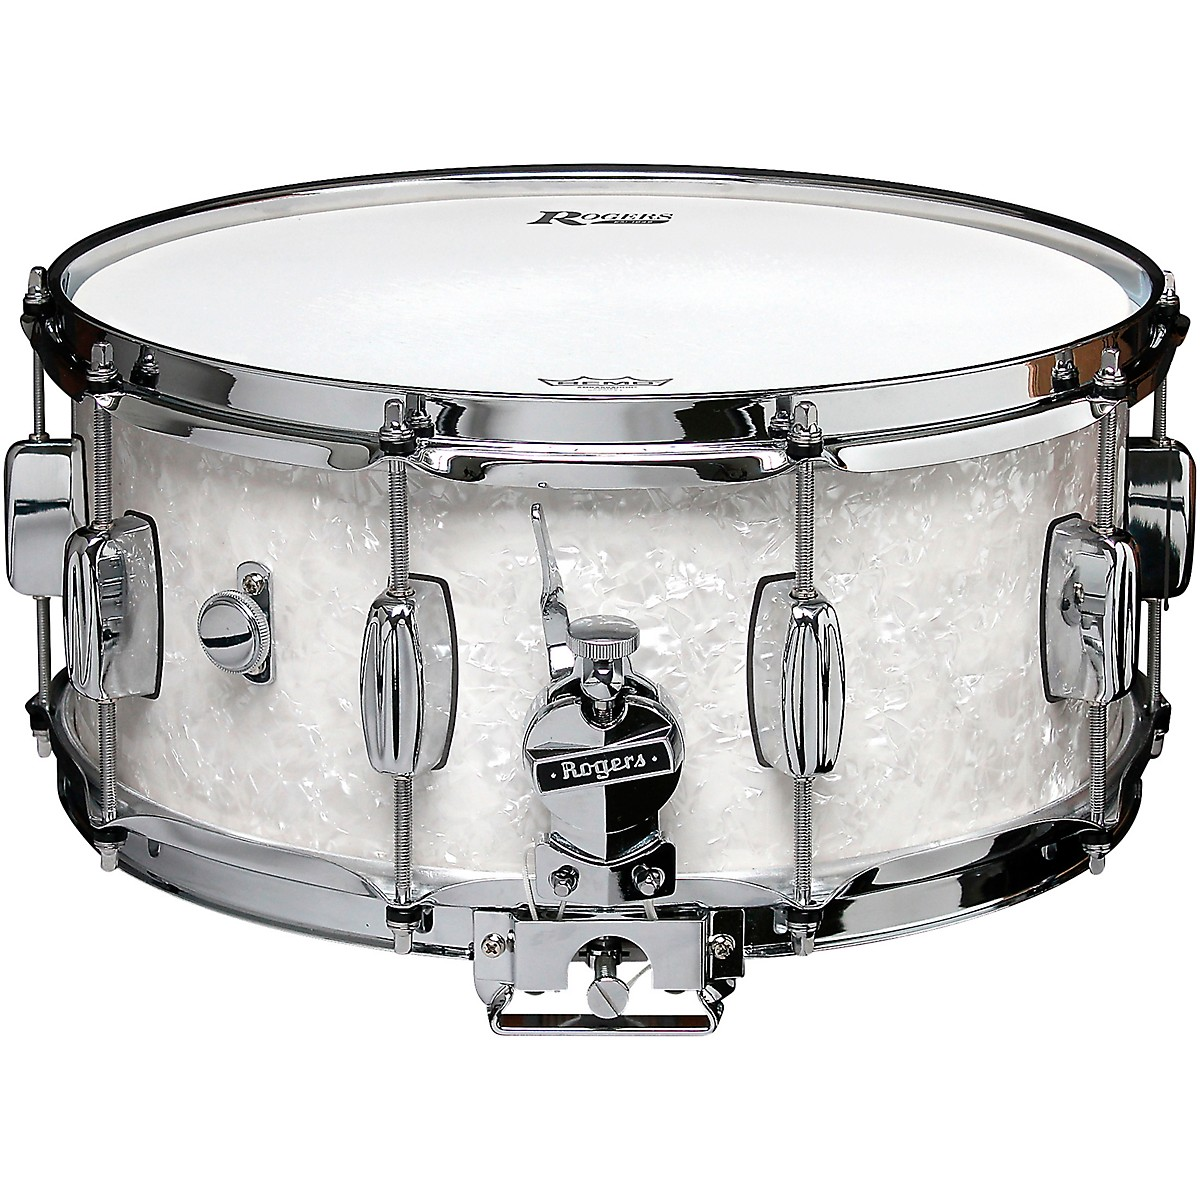 Rogers Dyna-Sonic Snare Drum with Bread & Butter Lugs